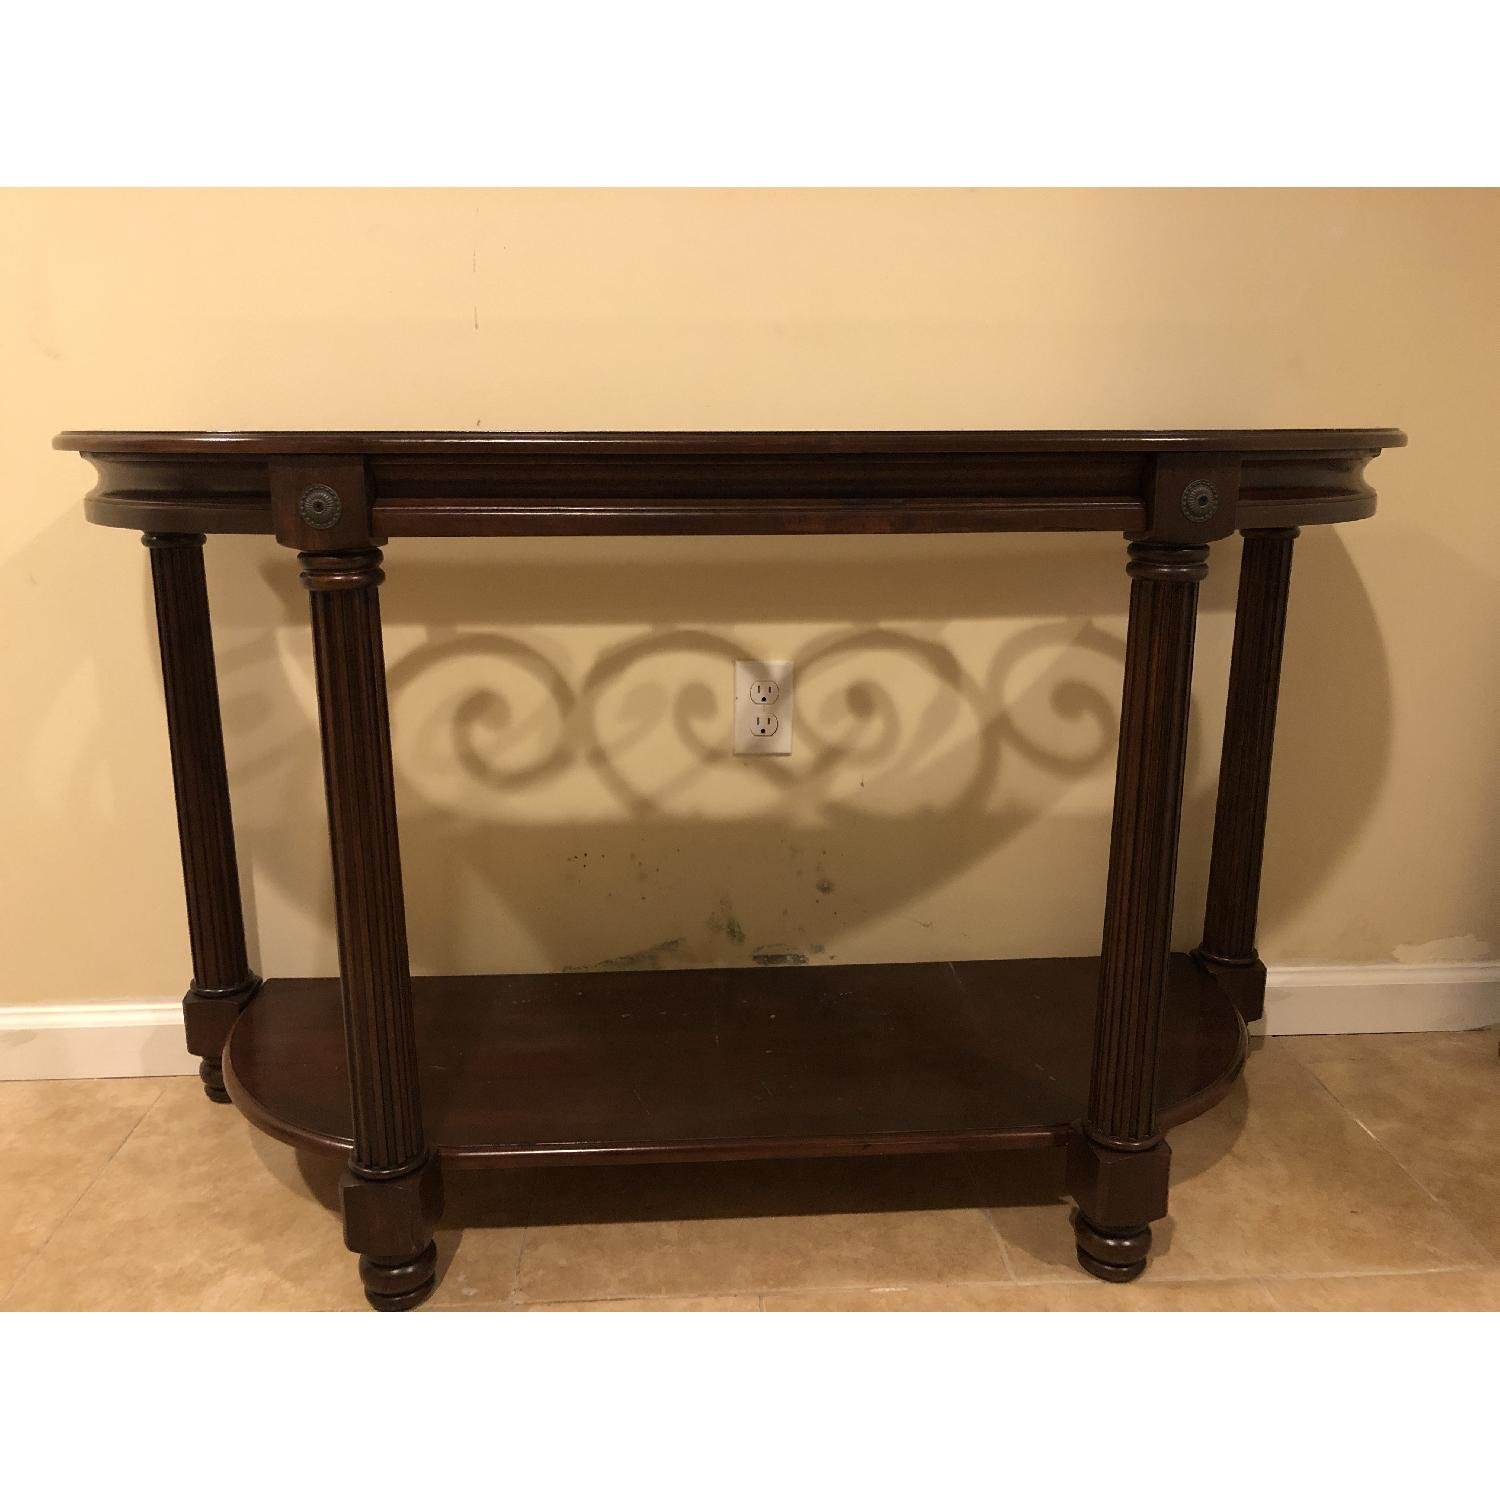 Raymour & Flanigan Sofa/Accent Table-2